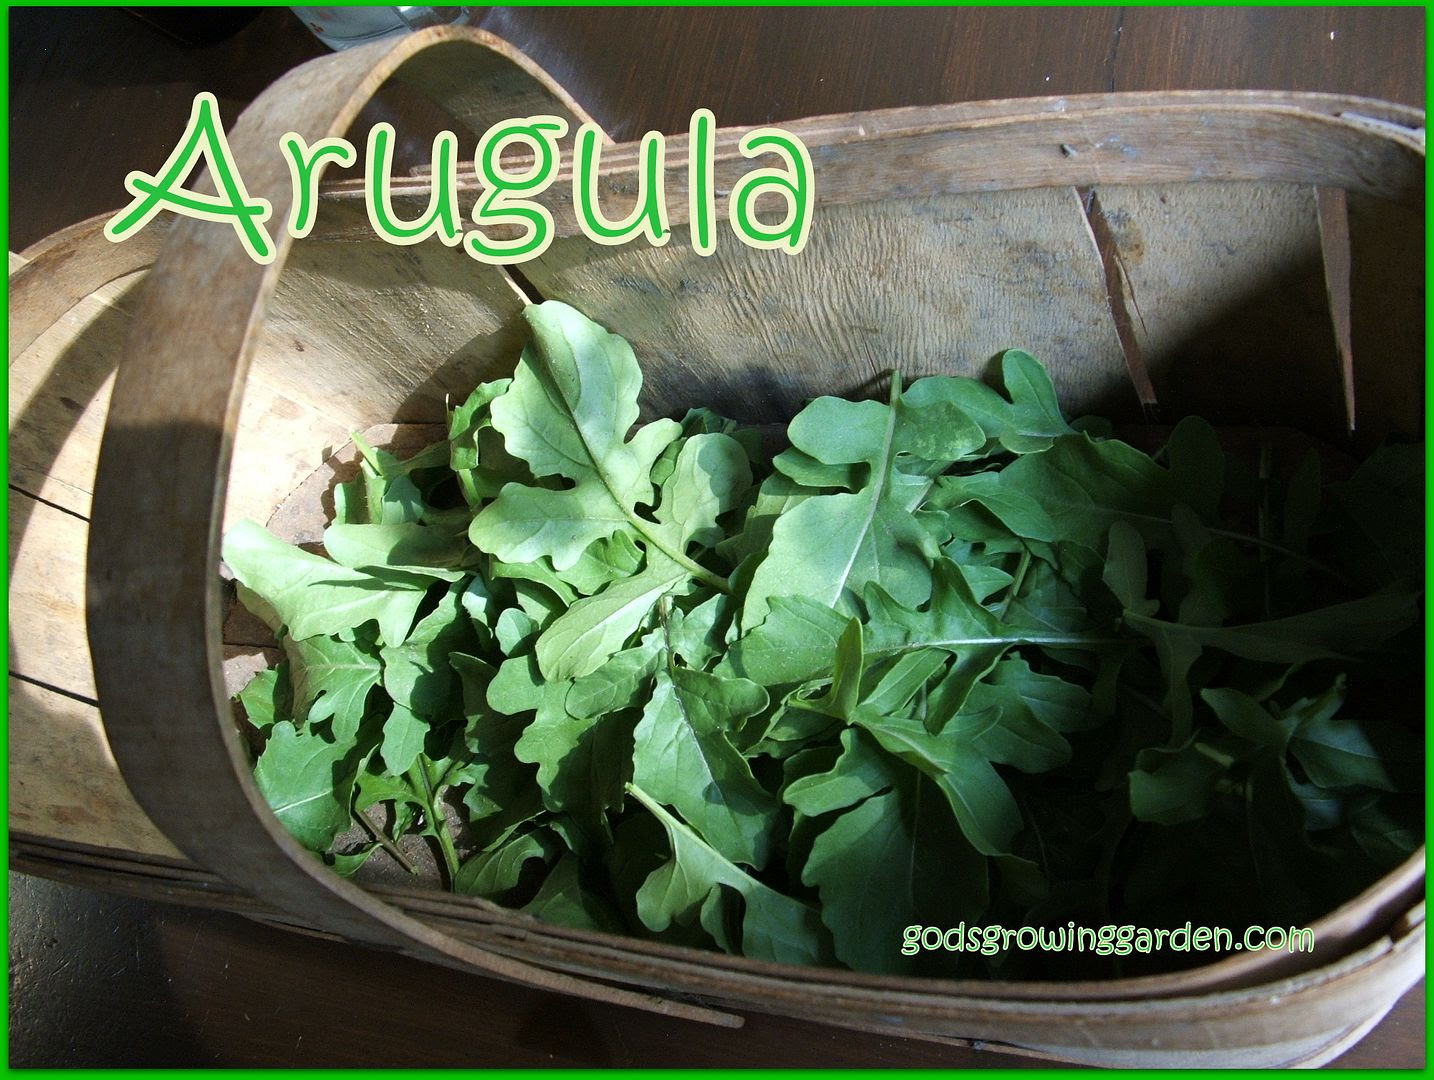 Arugula by Angie Ouellette-Tower for godsgrowinggarden.com photo 009_zpsc4cebdfe.jpg